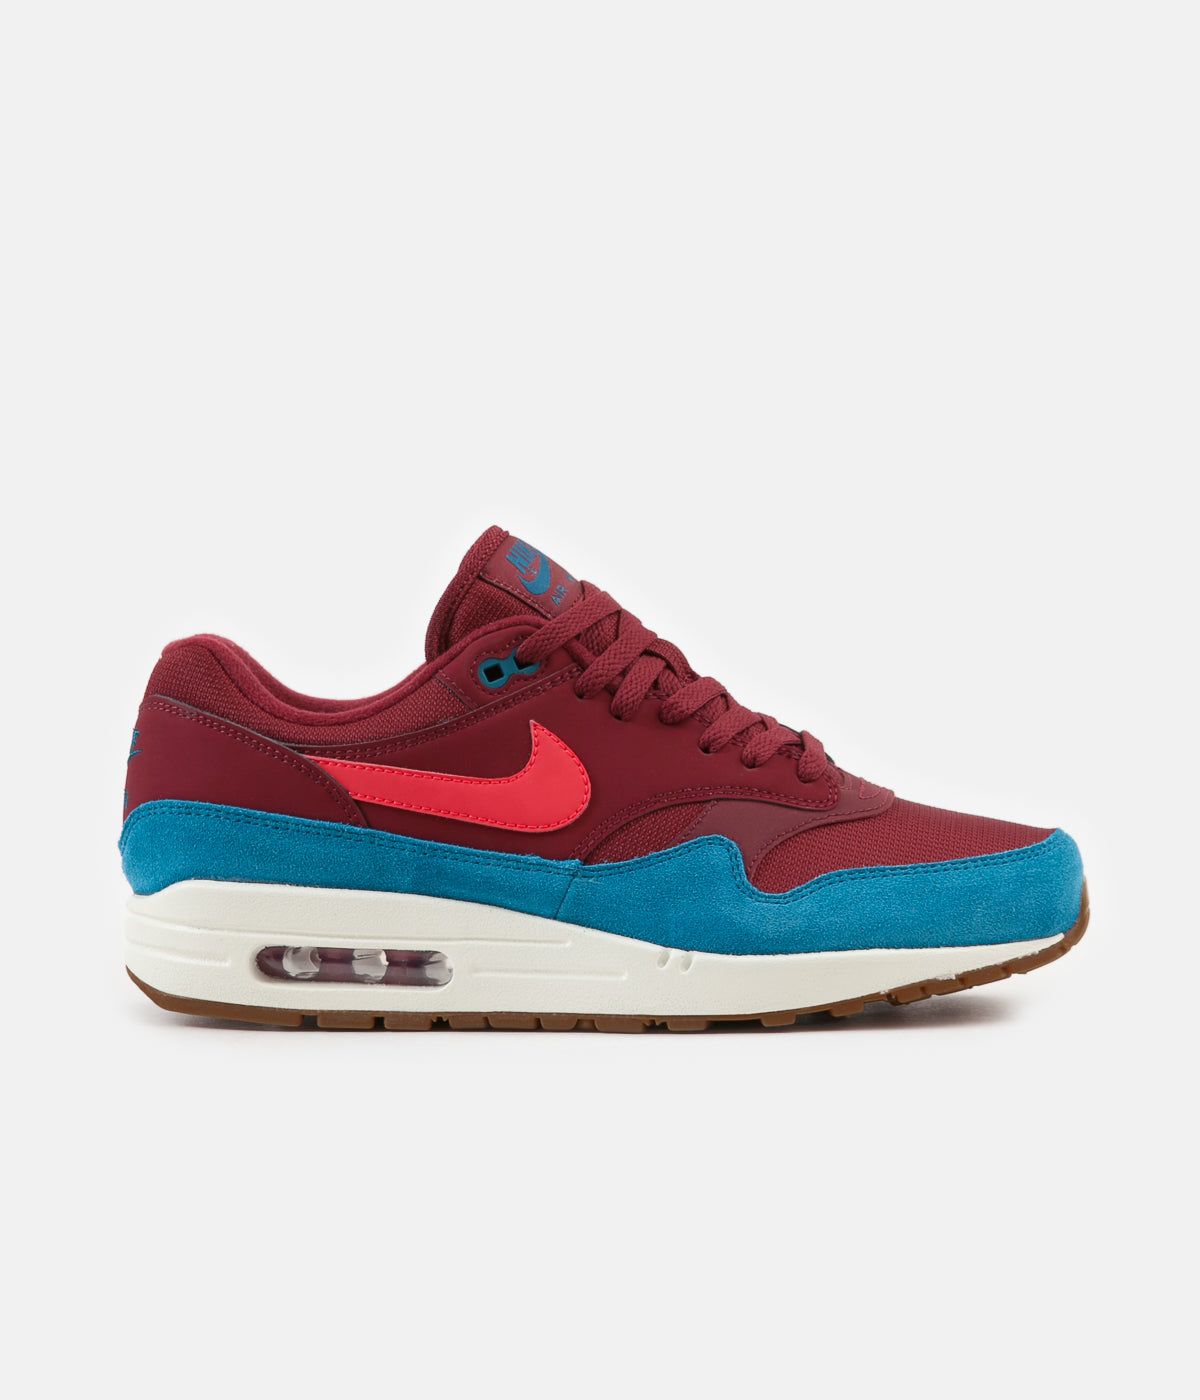 c3b94e0c53c08 ... Nike Air Max 1 Shoes - Team Red   Red Orbit - Green Abyss - White ...